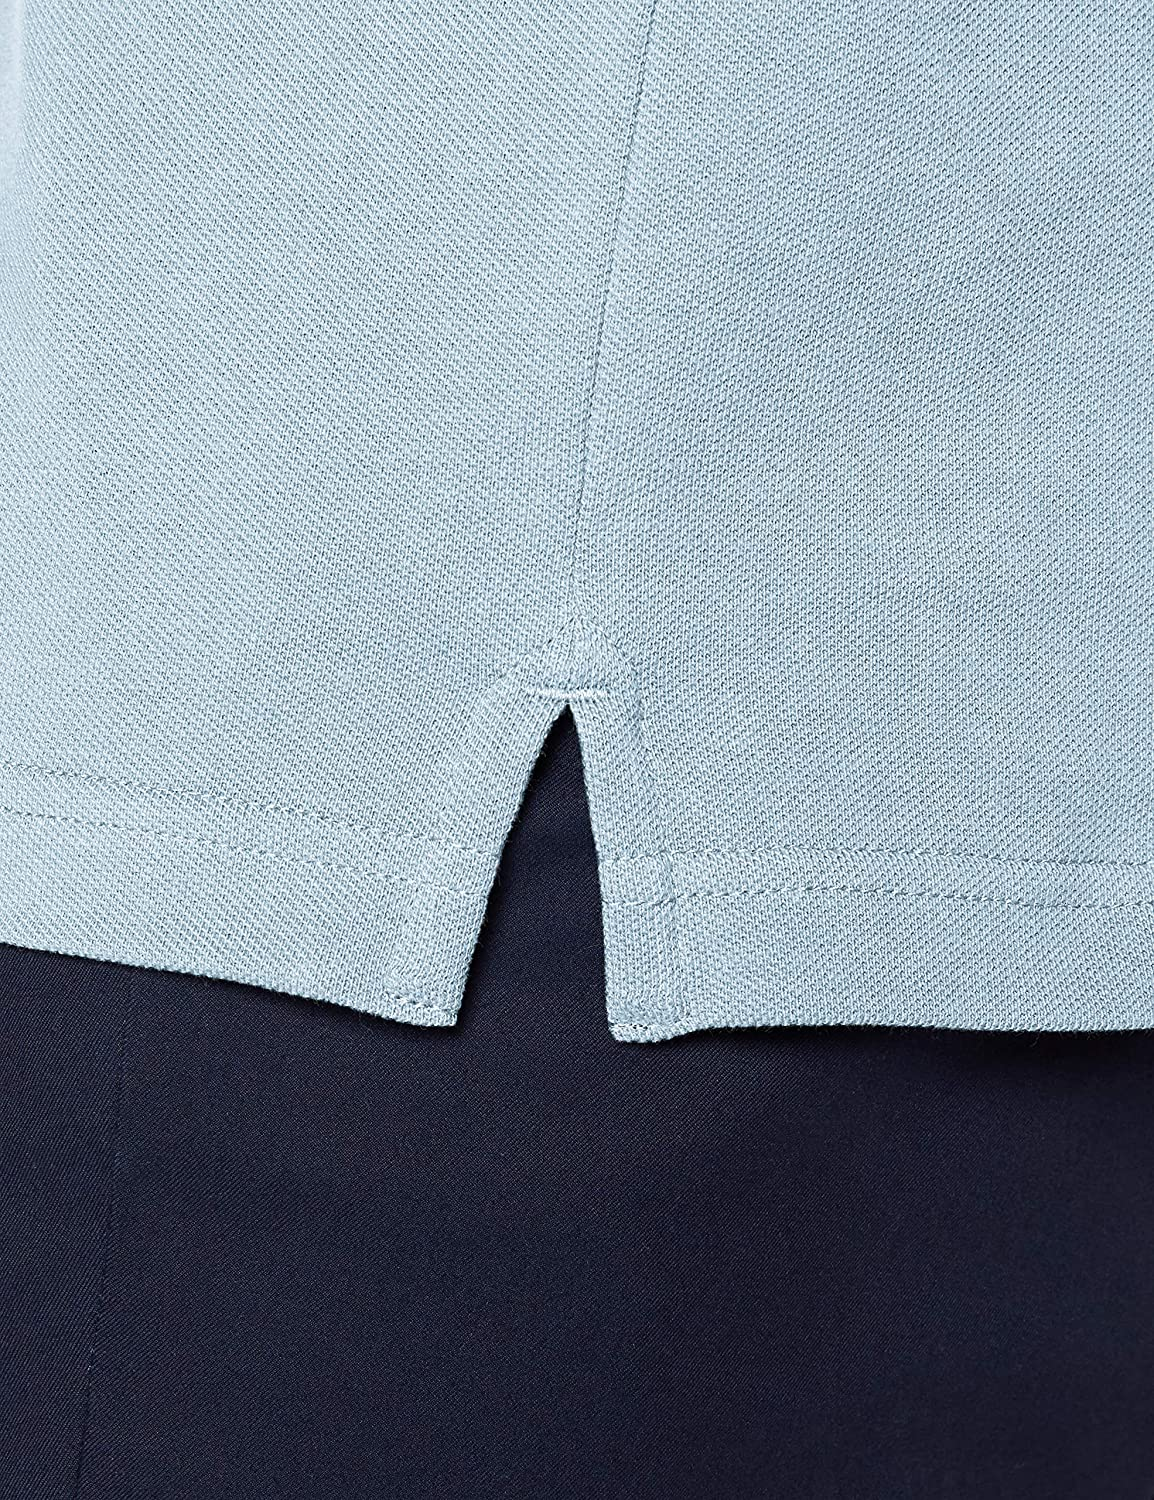 Hackett London herr New Classic polotröja Blau (564chambray 564)